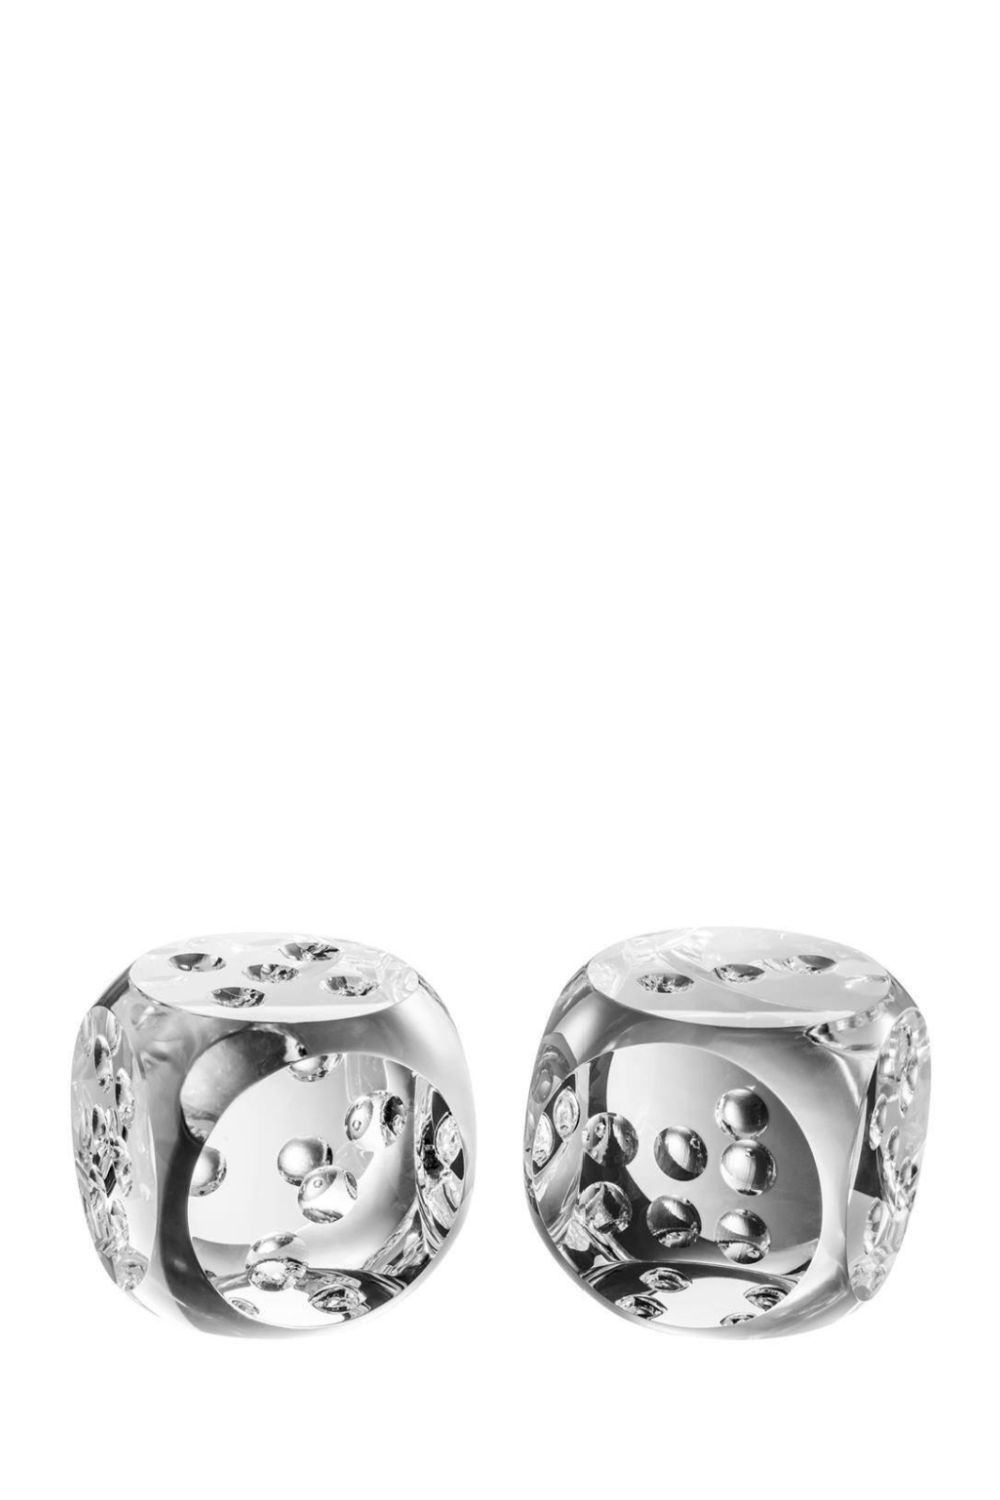 Glass Dice (set of 2) | Eichholtz Tradizone